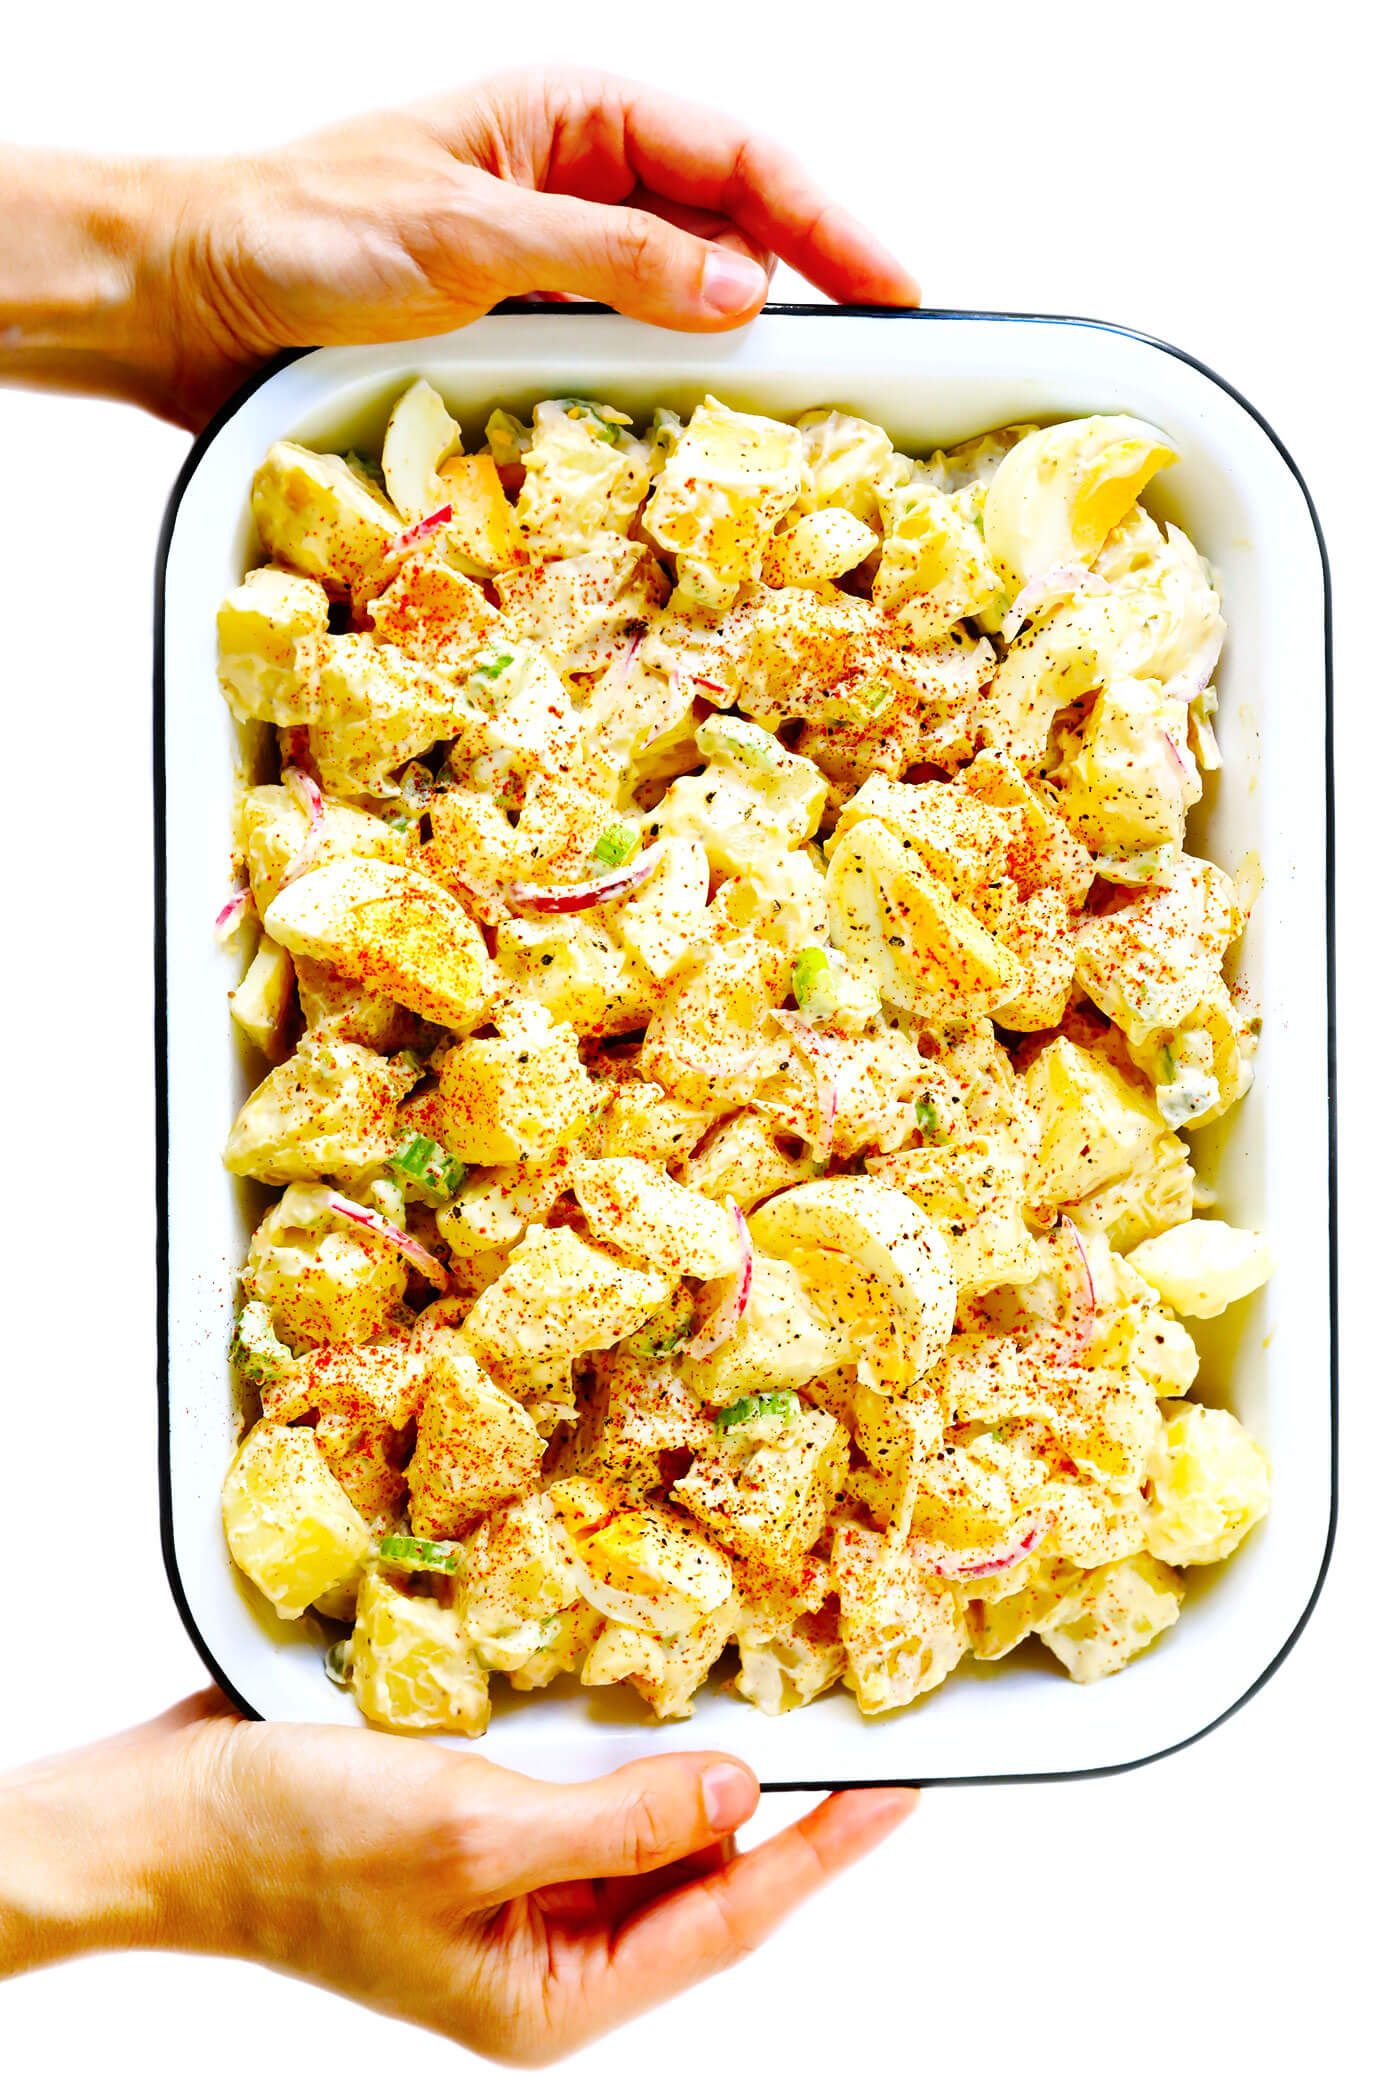 The BEST Potato Salad The BEST potato salad recipe!! Easy to make, naturally gluten-free, and always a crowd fave. Tips included for how to make yours with or without mayo, plus lots of other fun ingredients that you're welcome to add in (hello, bacon!). |